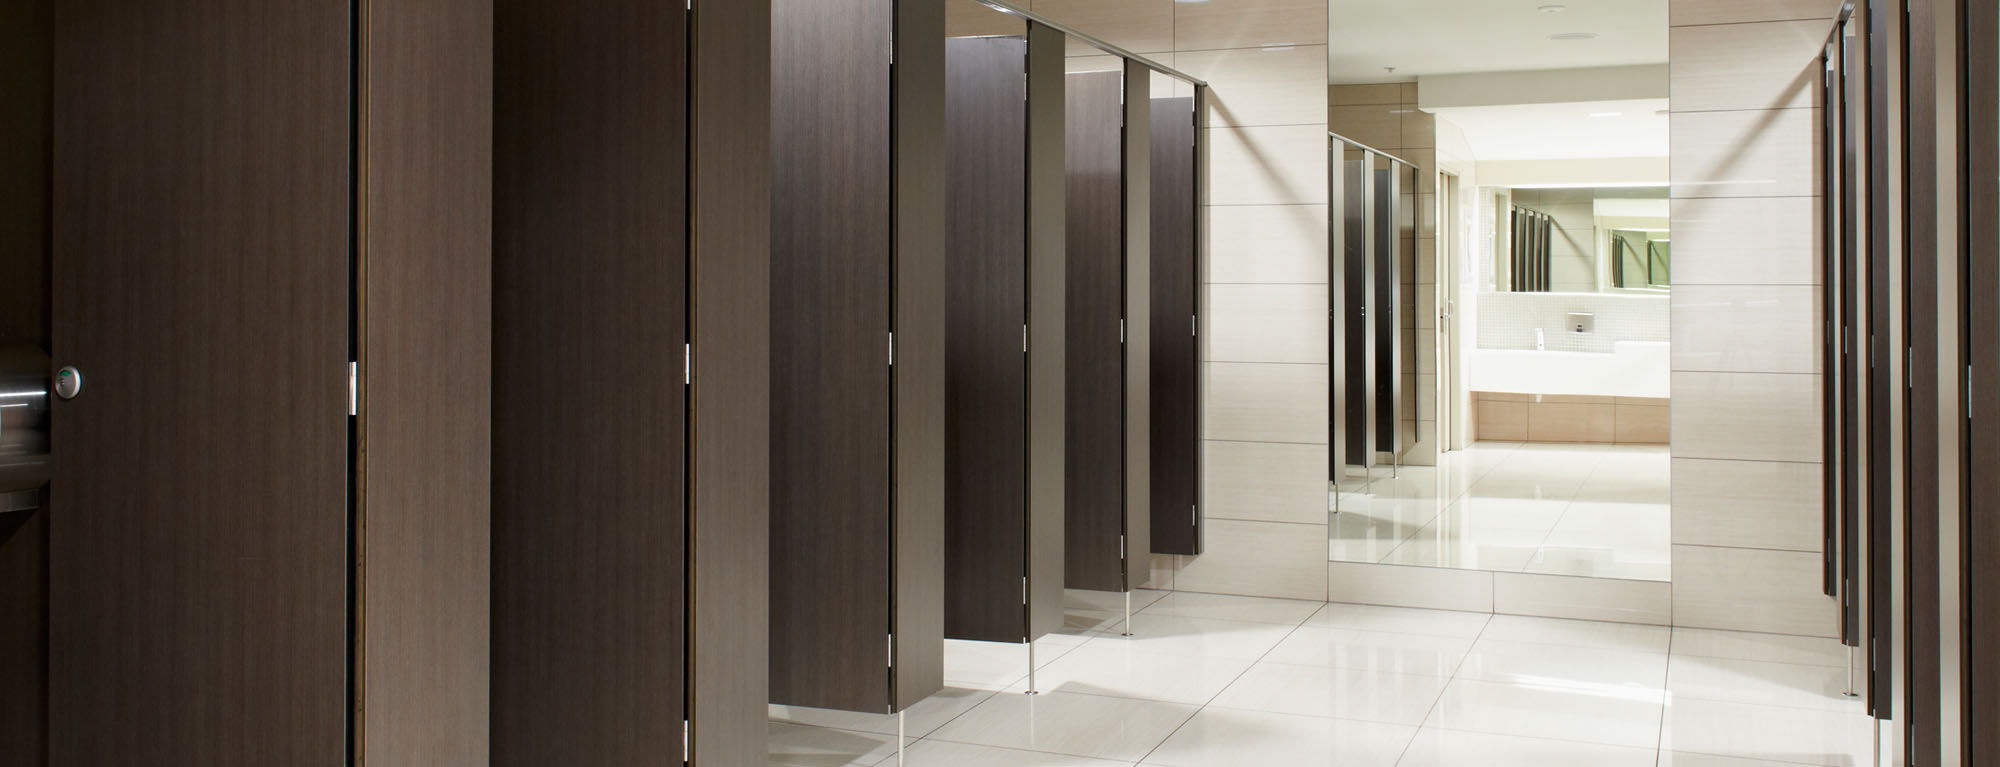 Ablution Solutions Toilet Partitions Resco New Zealand - Commercial bathroom stall door locks